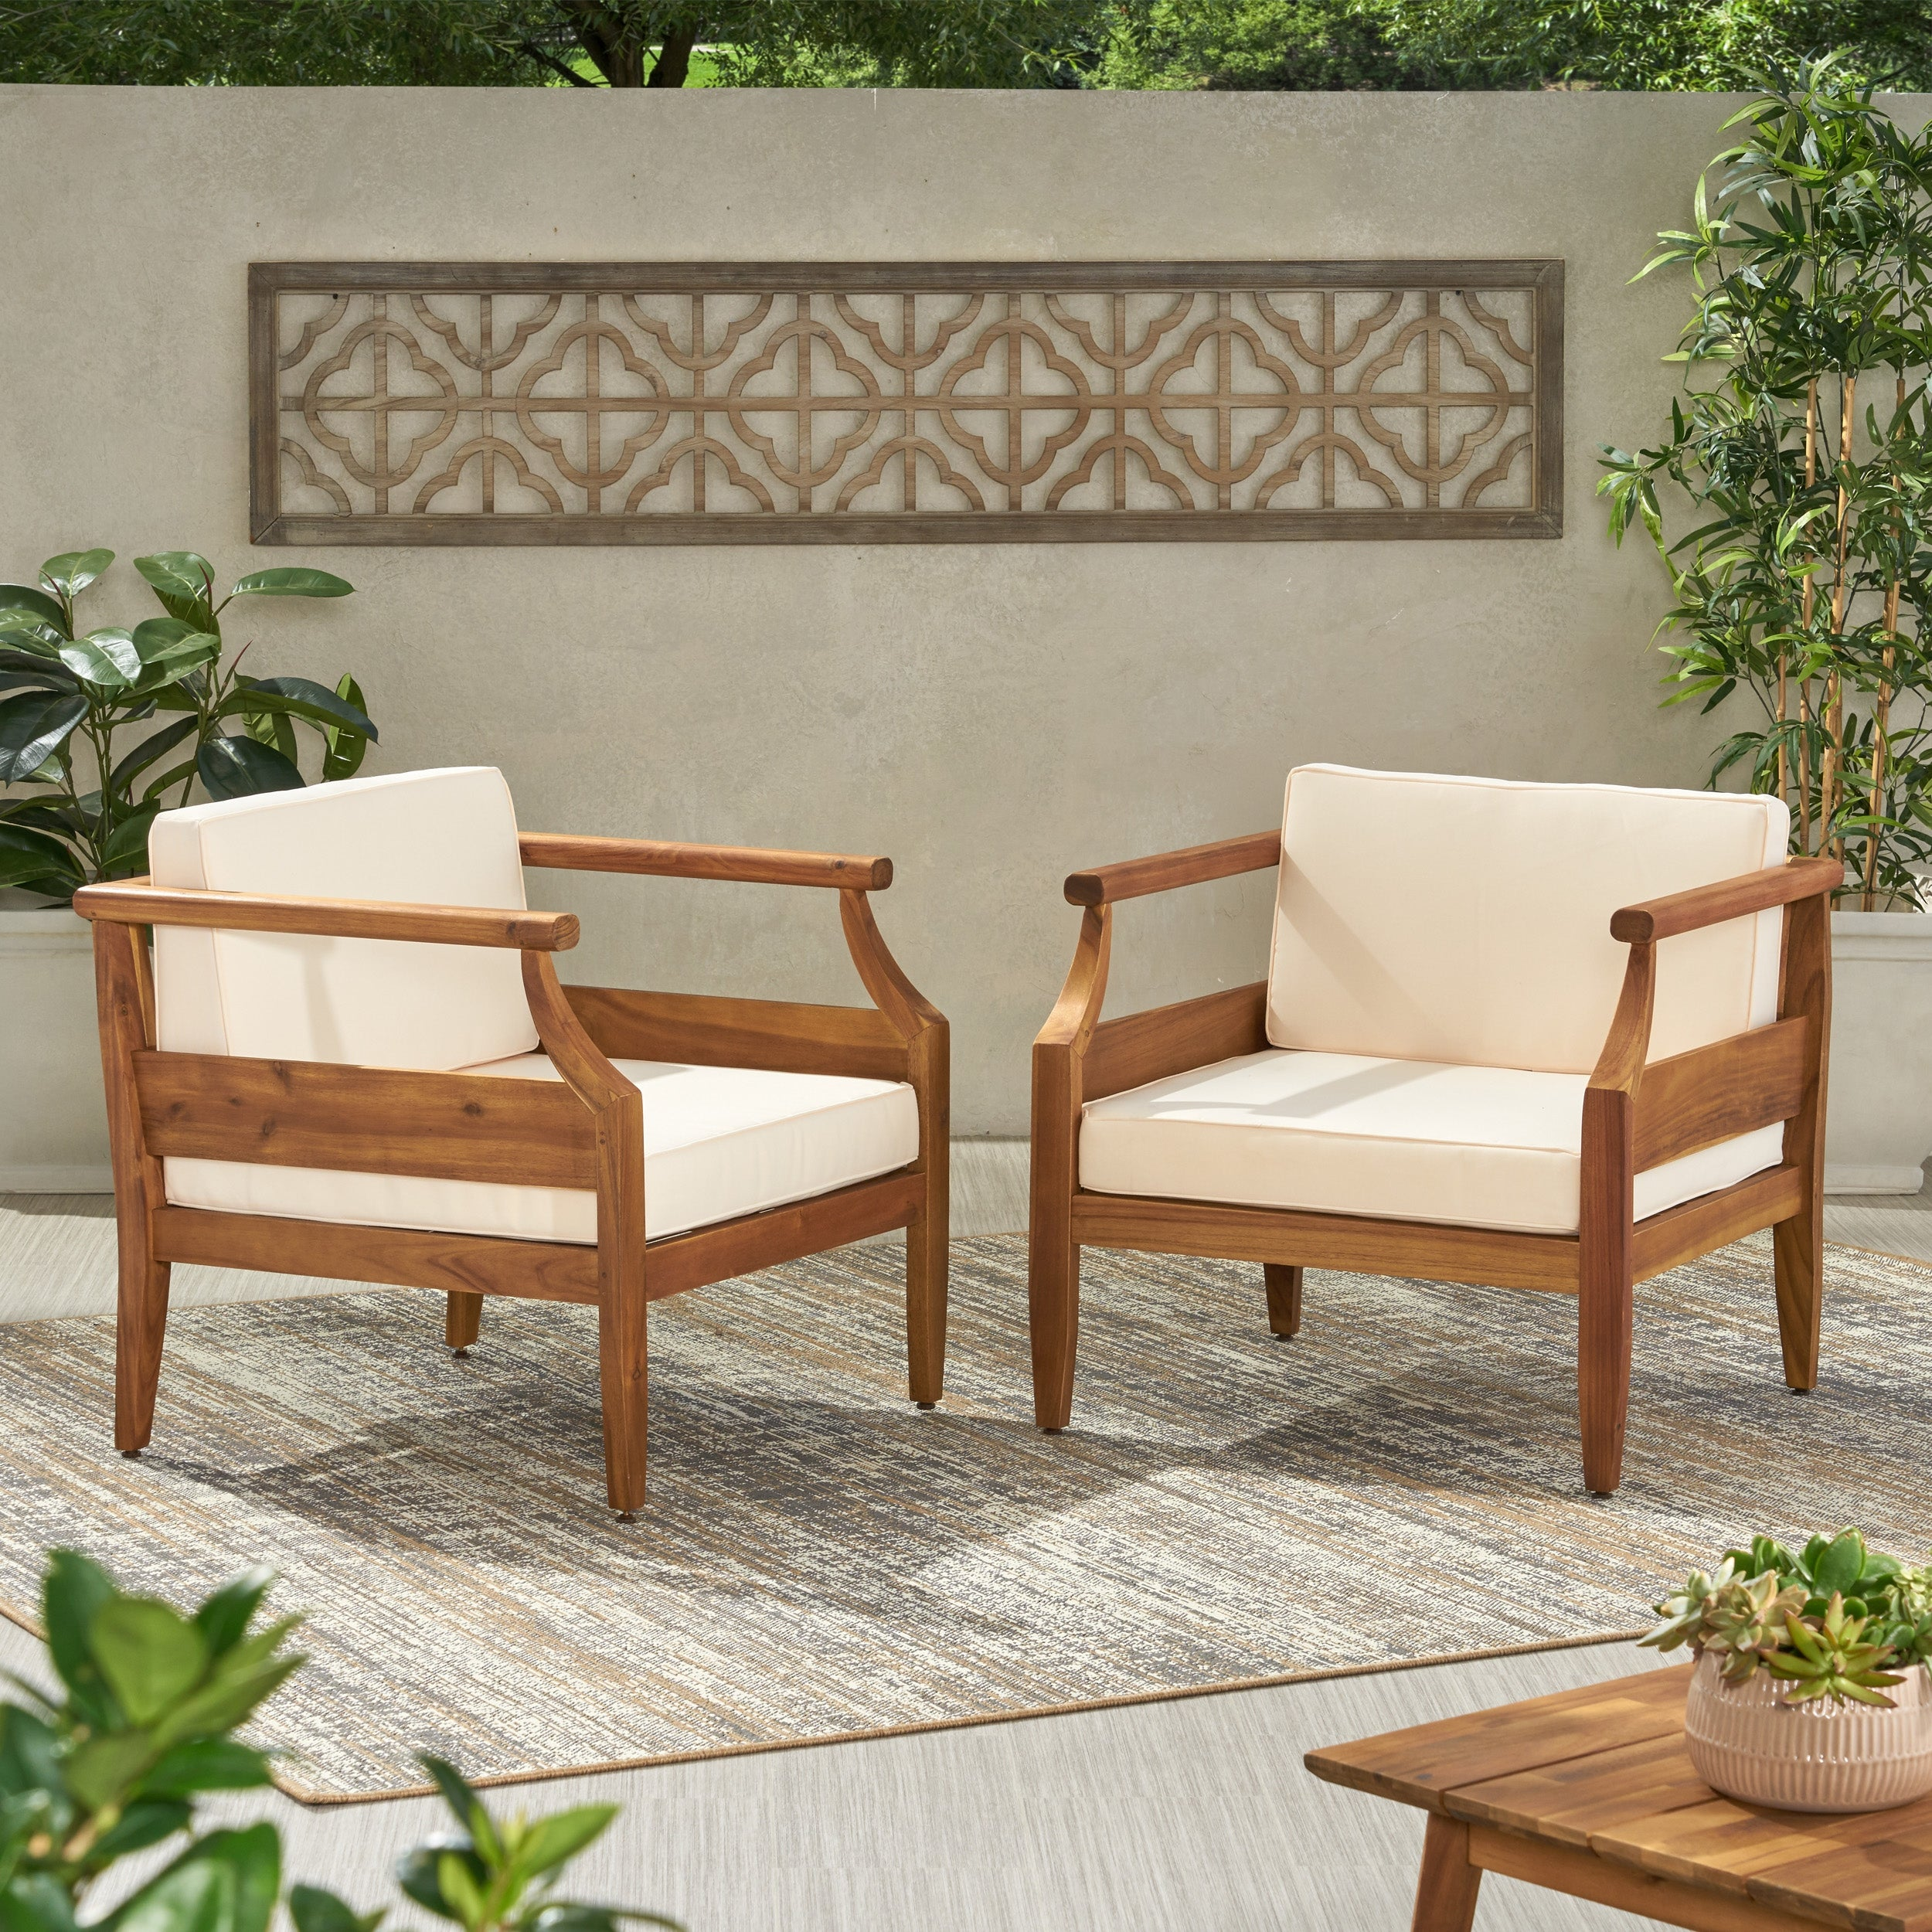 Shop Black Friday Deals On Aston Outdoor Modern Acacia Cushioned Club Chairs Set Of 2 By Christopher Knight Home Overstock 30816251 Teak Finish Dark Gray Cushion